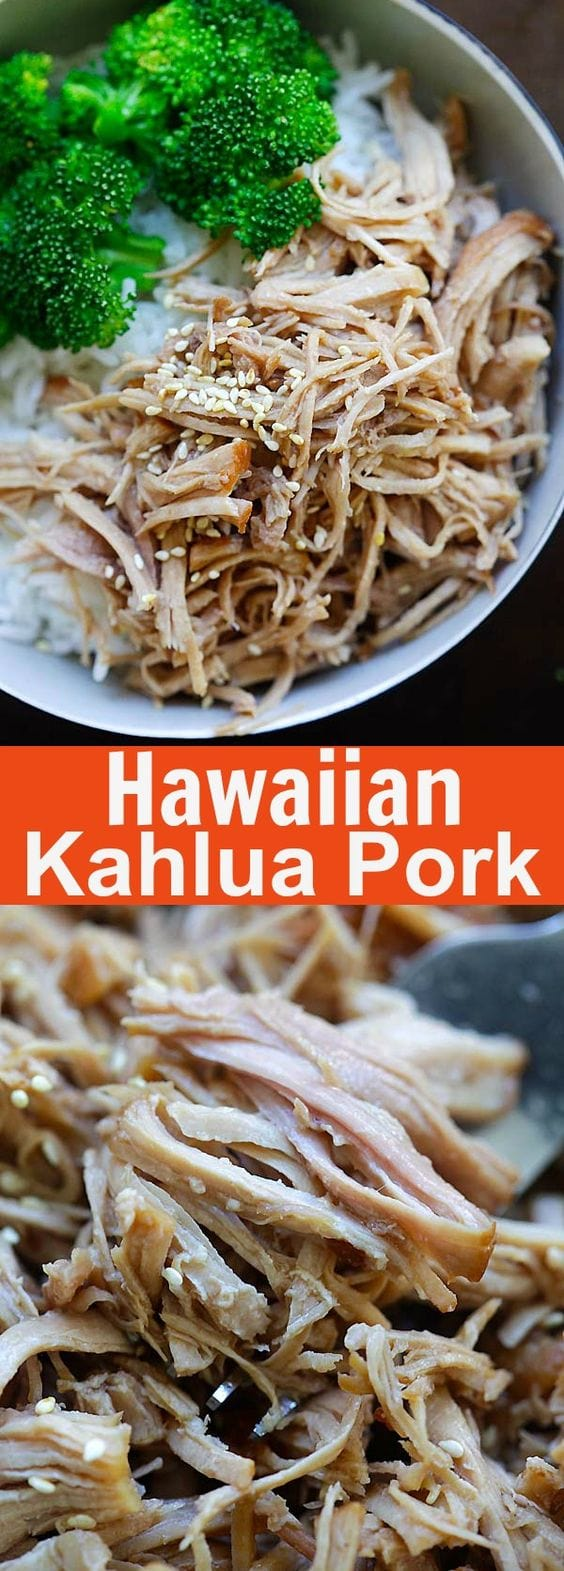 Hawaiian Kalua Pork - tender and juicy pressure cooker Hawaiian Kalua pork recipe. 10 mins active time and dinner is done | rasamalaysia.com